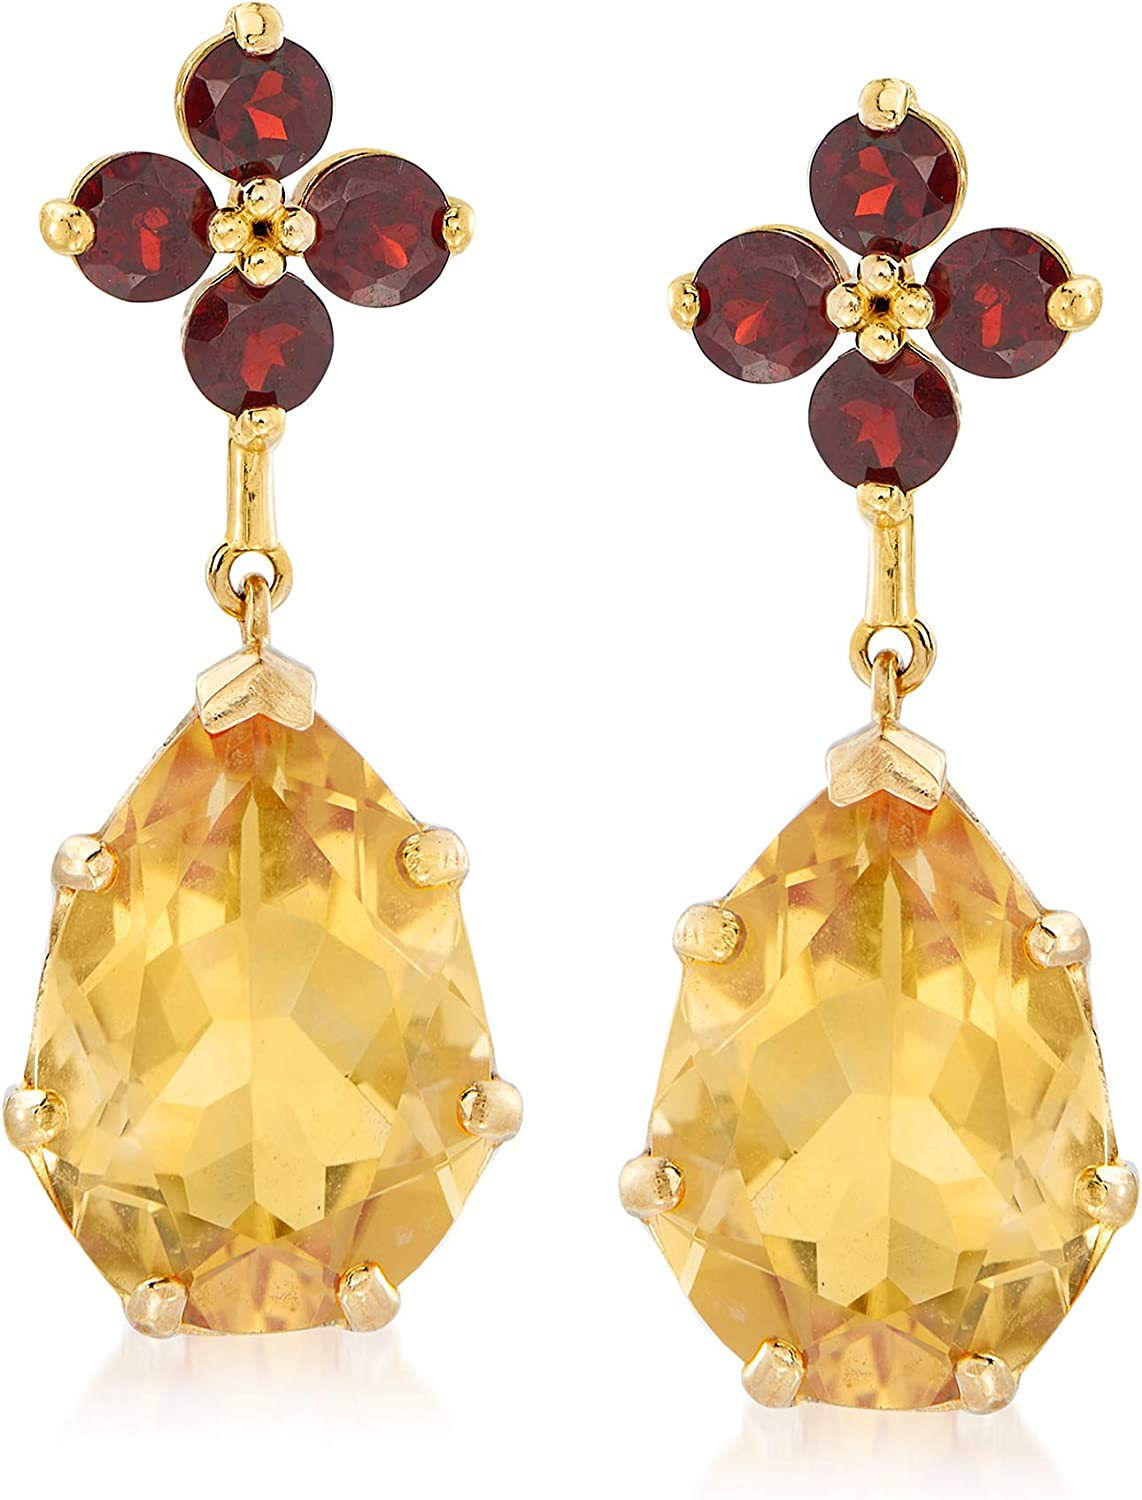 Ross-Simons 6.50 ct. t.w. Citrine and 1.20 ct. t.w. Garnet Floral Drop Earrings in 14kt Yellow Gold